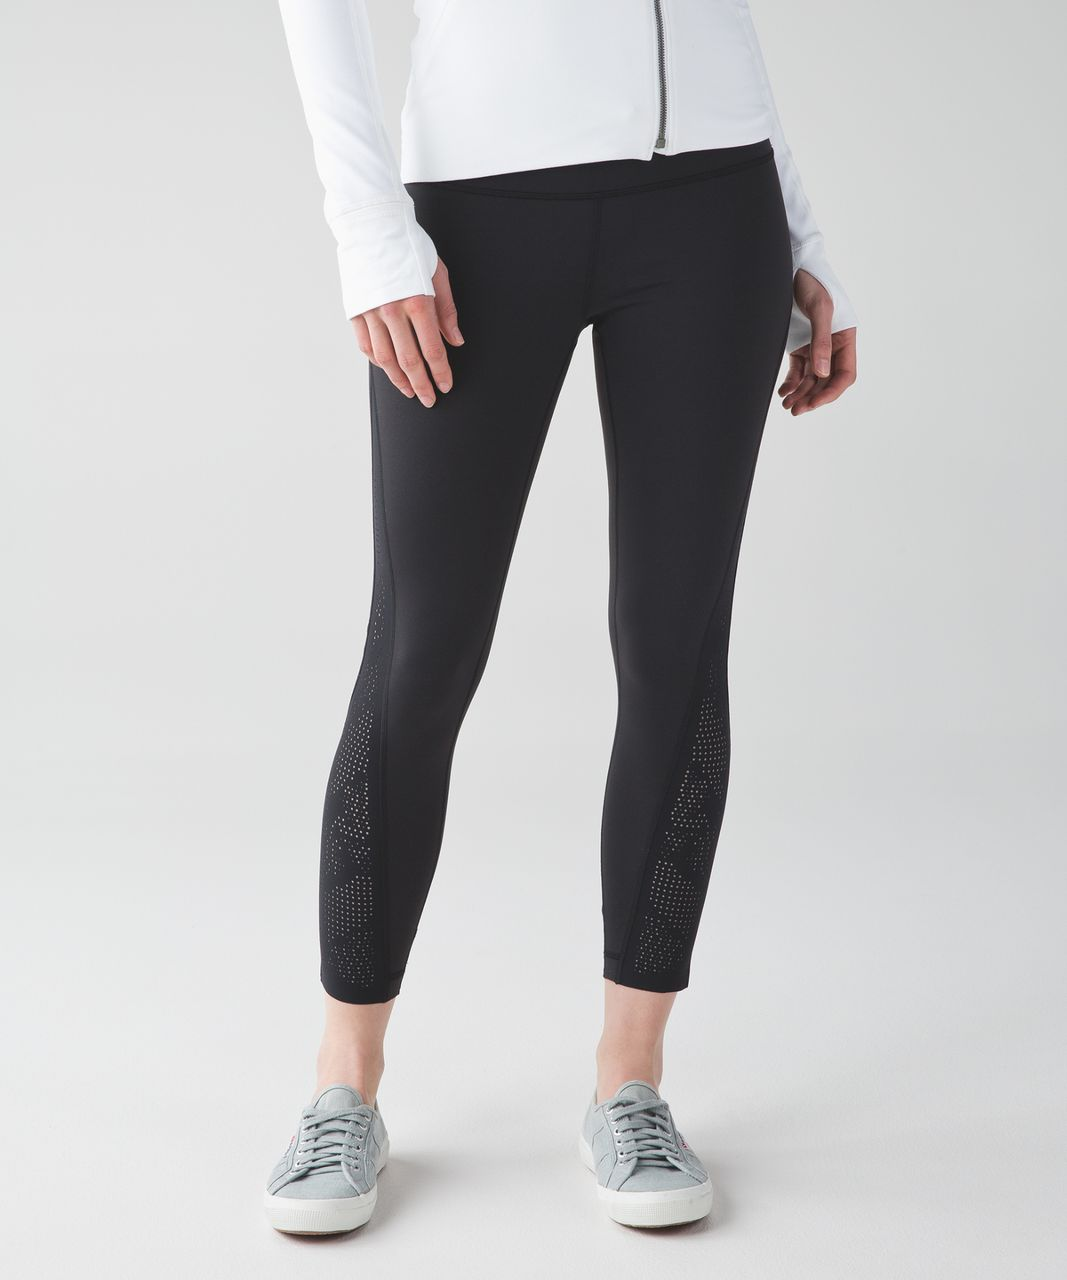 Lululemon High Times Pant - Black